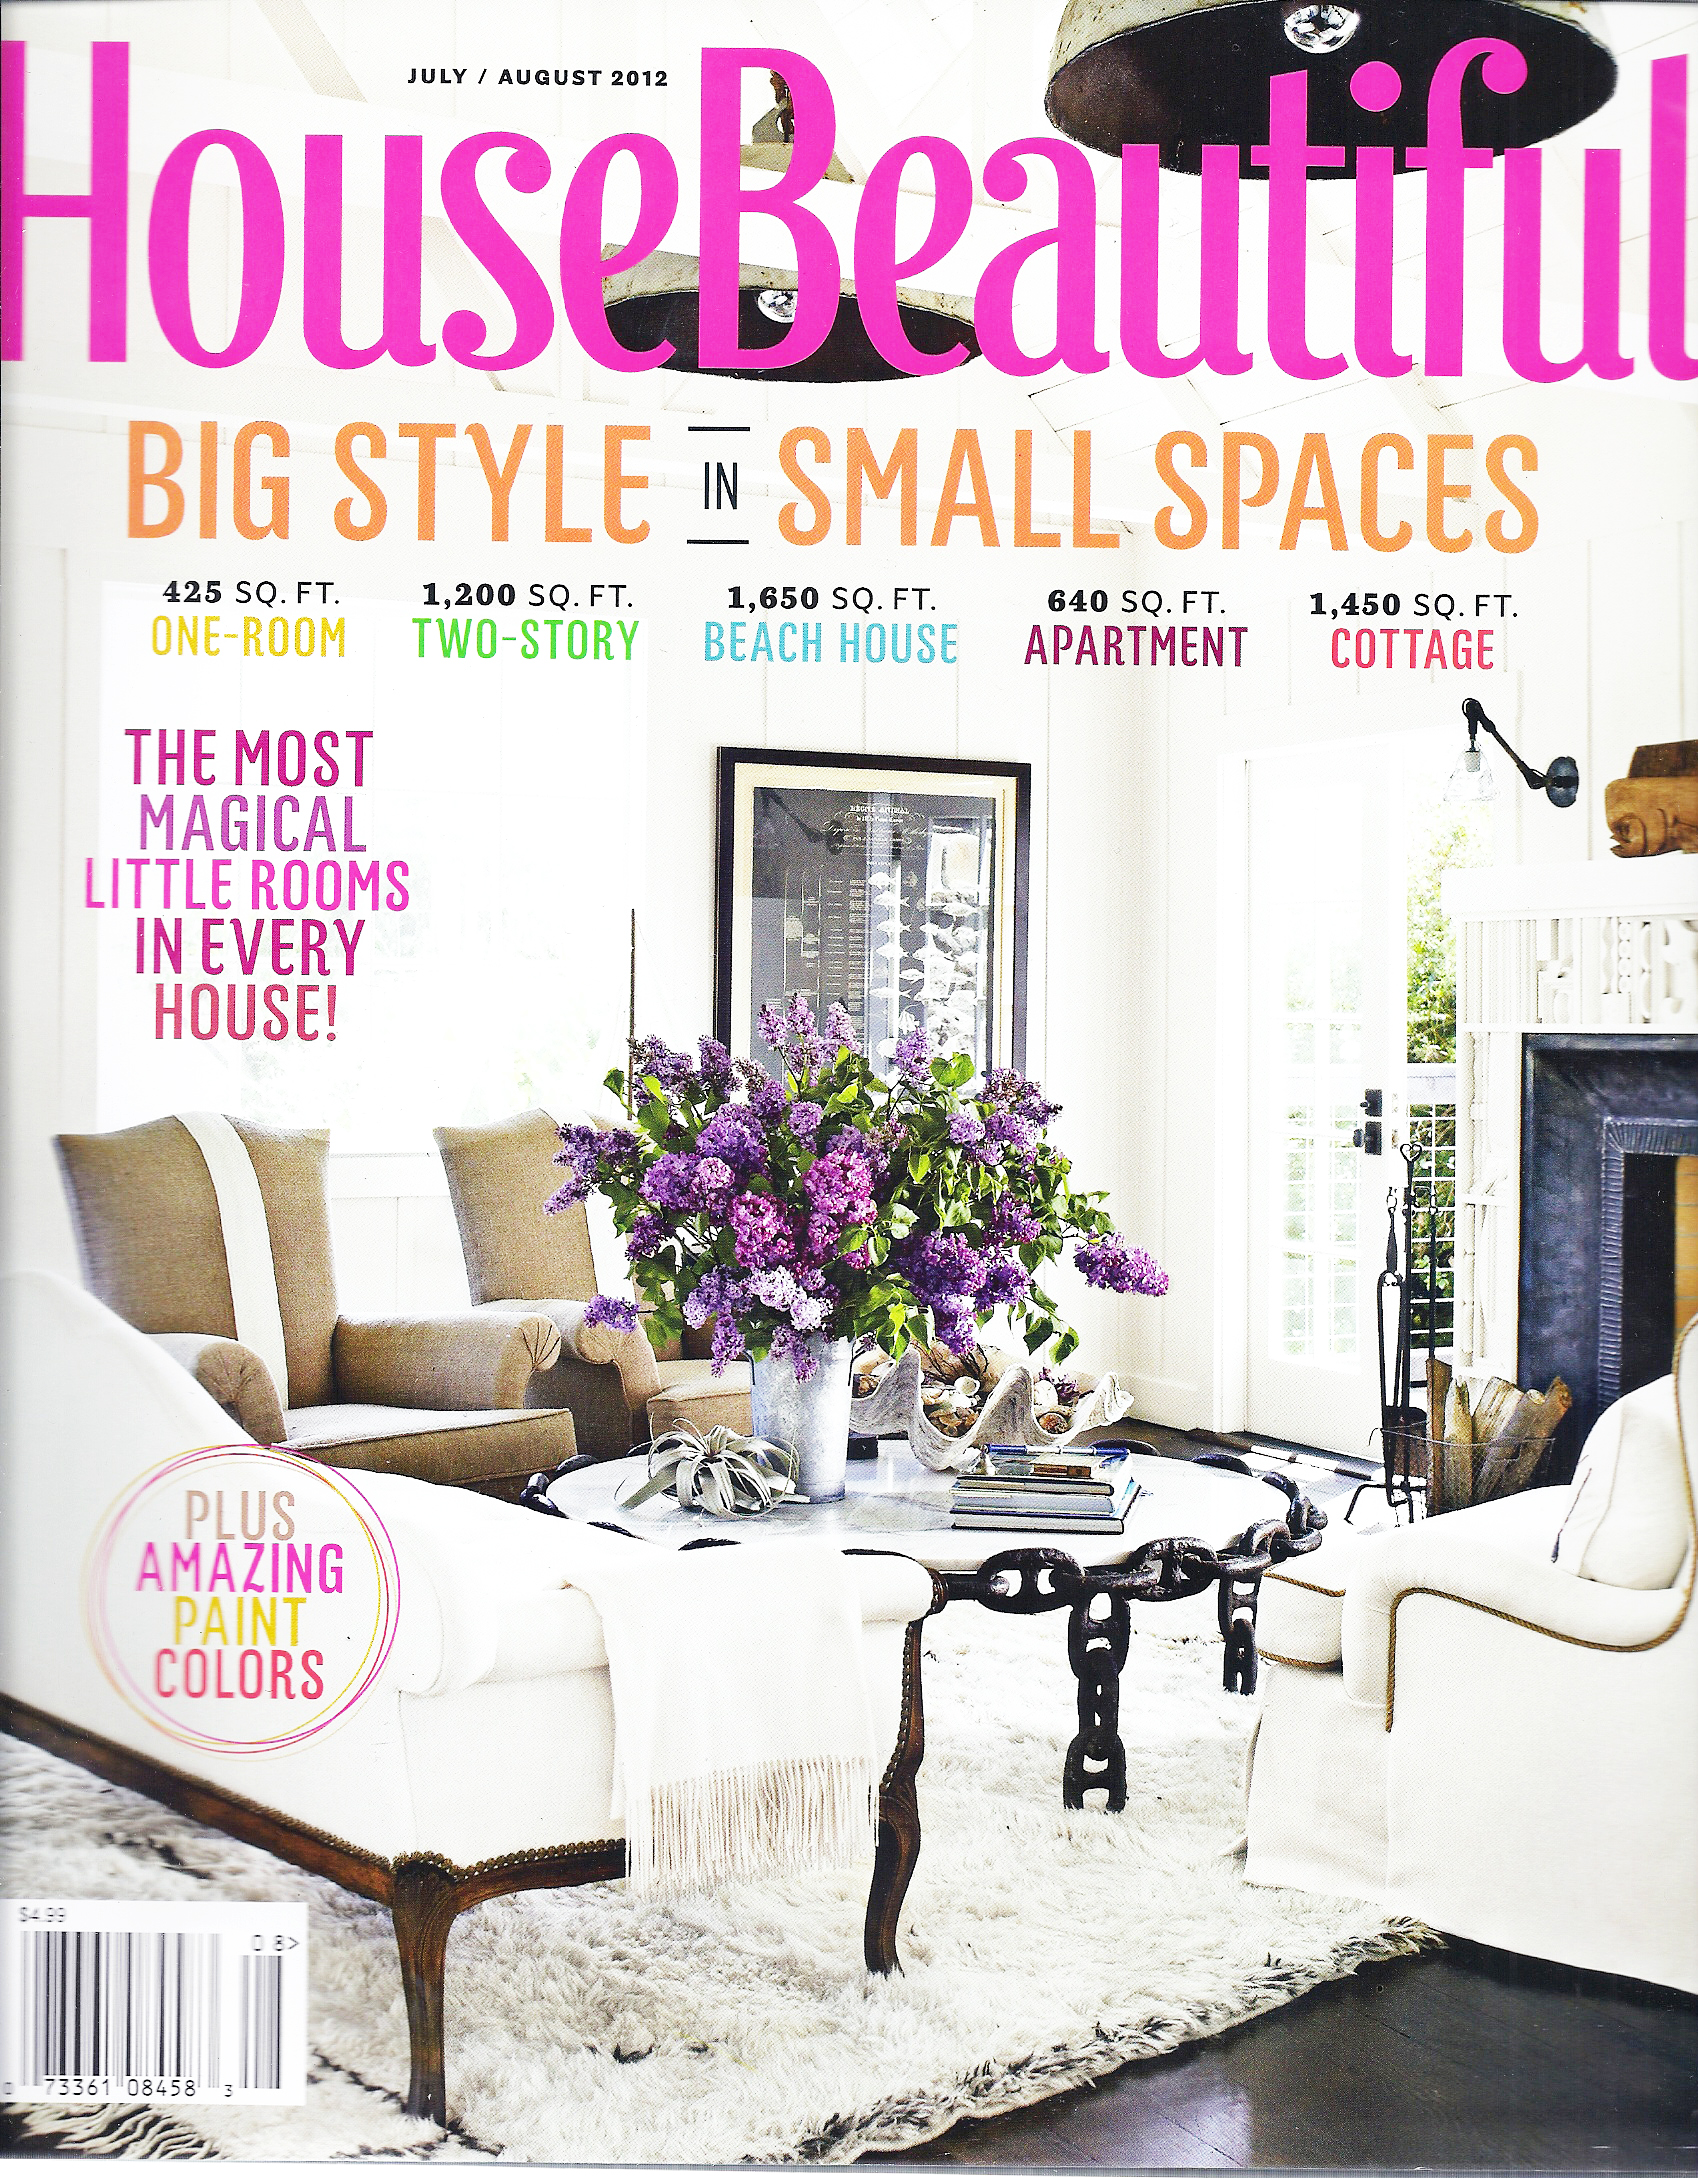 House Beautiful Mag house beautiful magazine | interior provisions